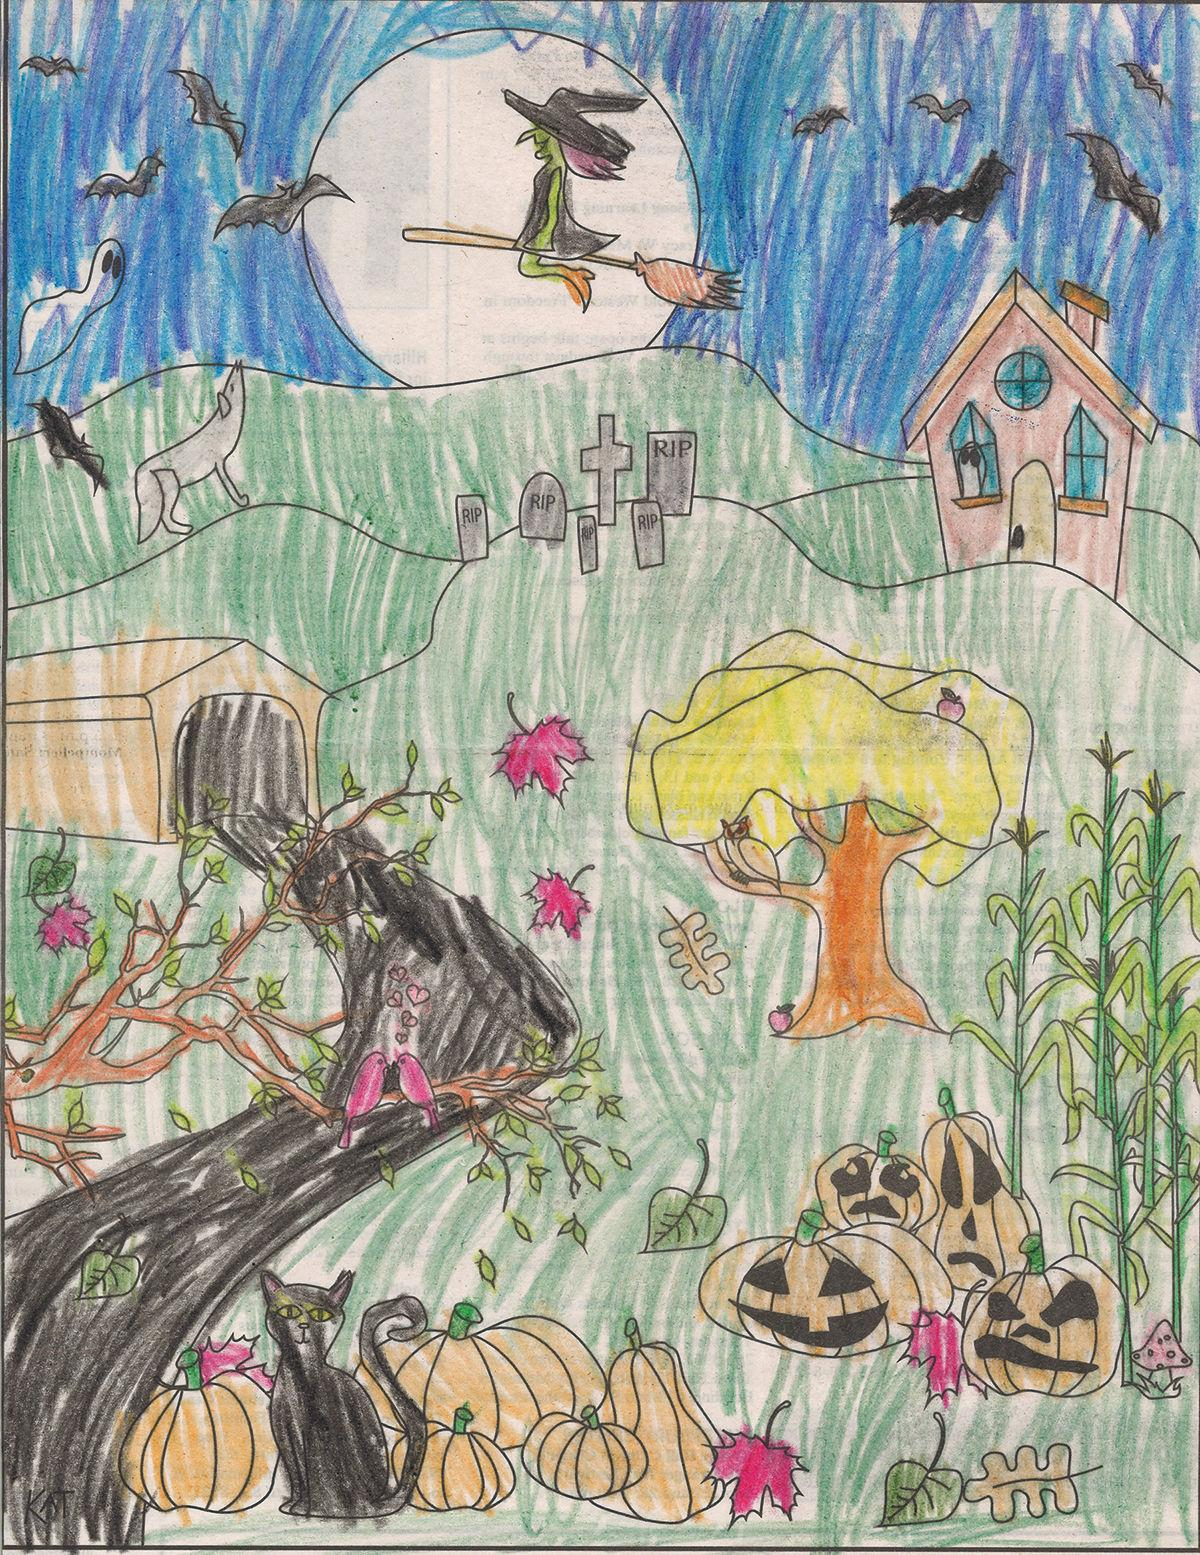 Age Group 5 and Under Second Place Winner: Artwork by Emelie Barnard